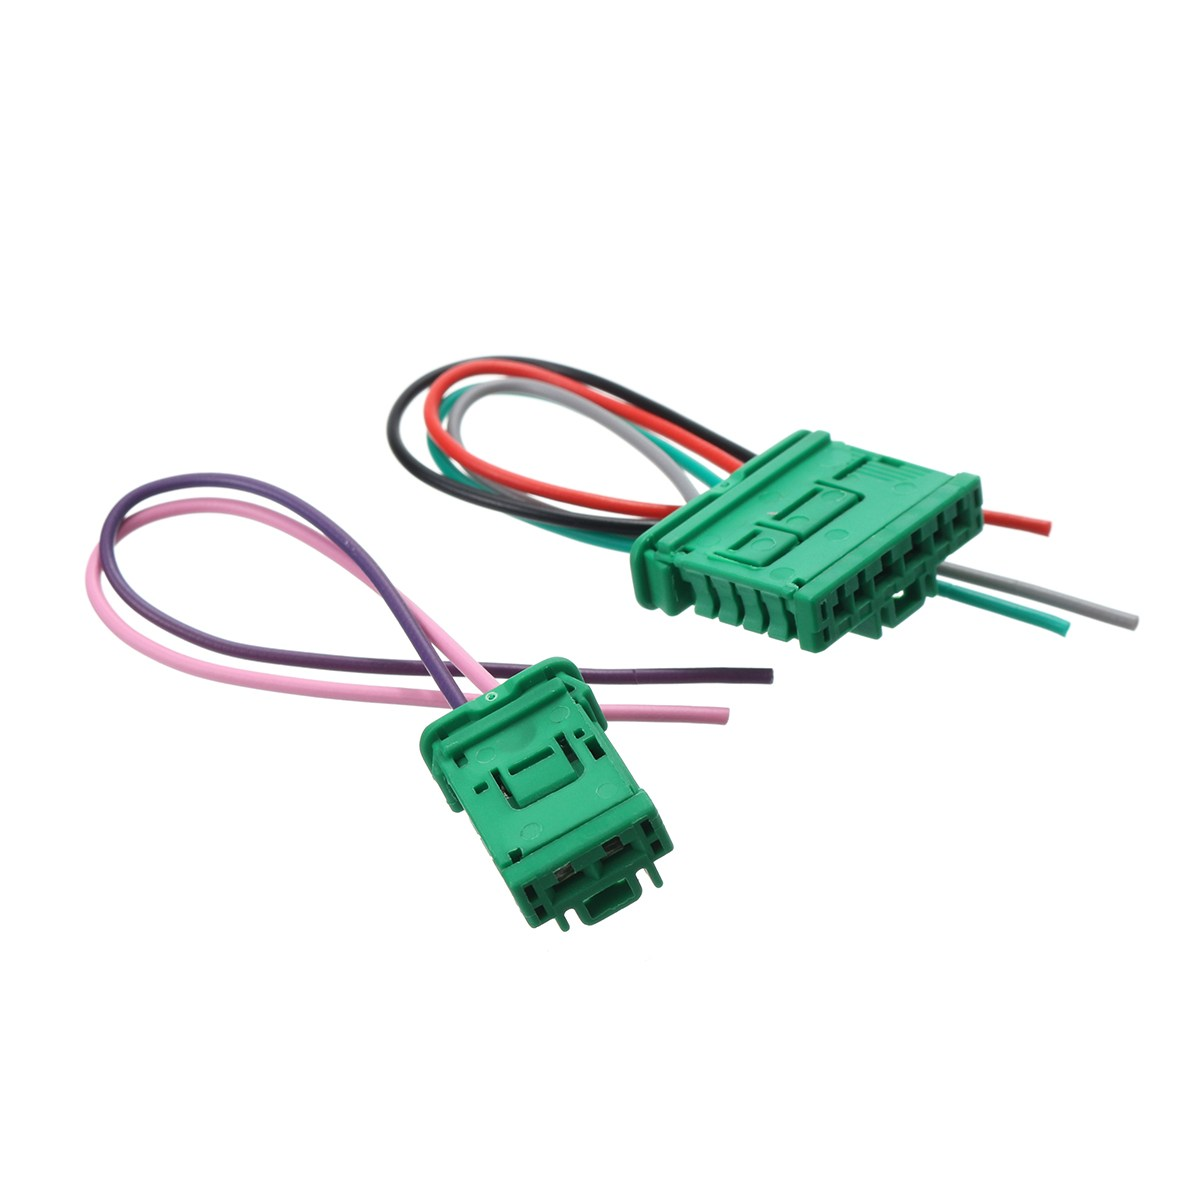 small resolution of kroak heater resistor wiring harness loom 27150ed70b for citroen for peugeot for for renault for megane for scenic in cables adapters sockets from